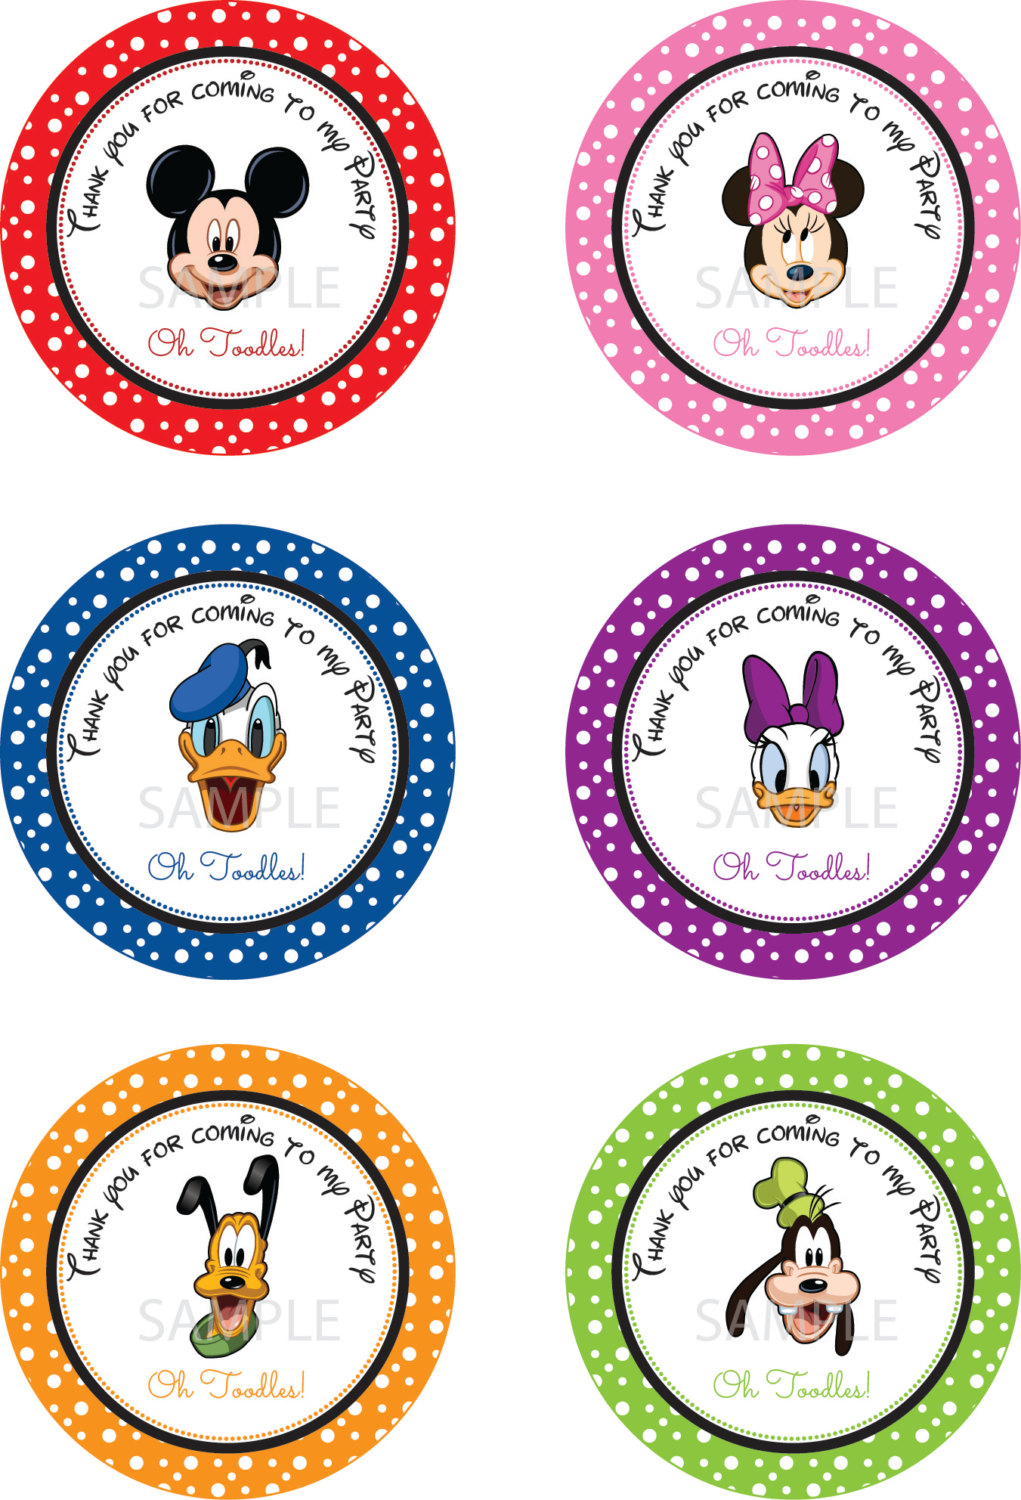 photo regarding Mickey Mouse Printable Cutouts called Mickey Mouse Clubhouse Figures No cost down load suitable